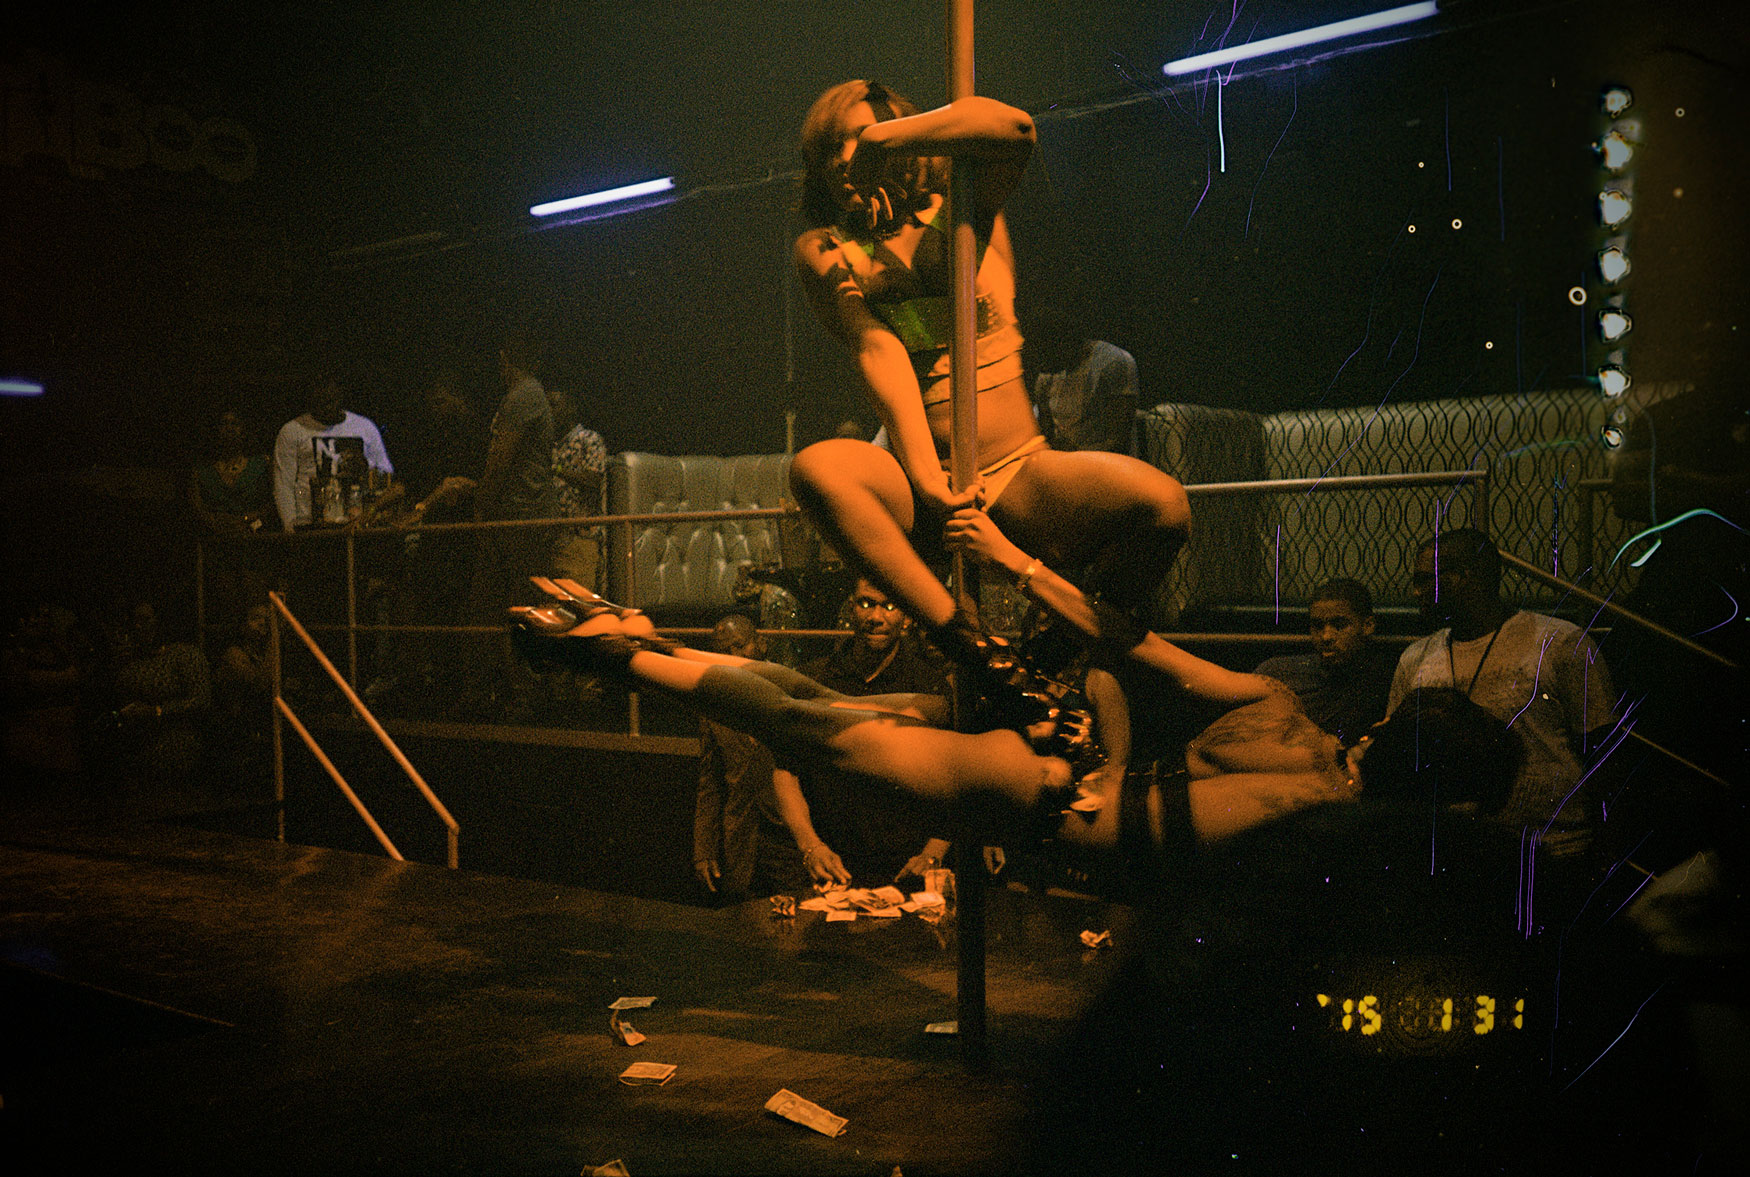 Taken at Taboo, a Montego Bay strip club frequented by people from the dancehall scene.